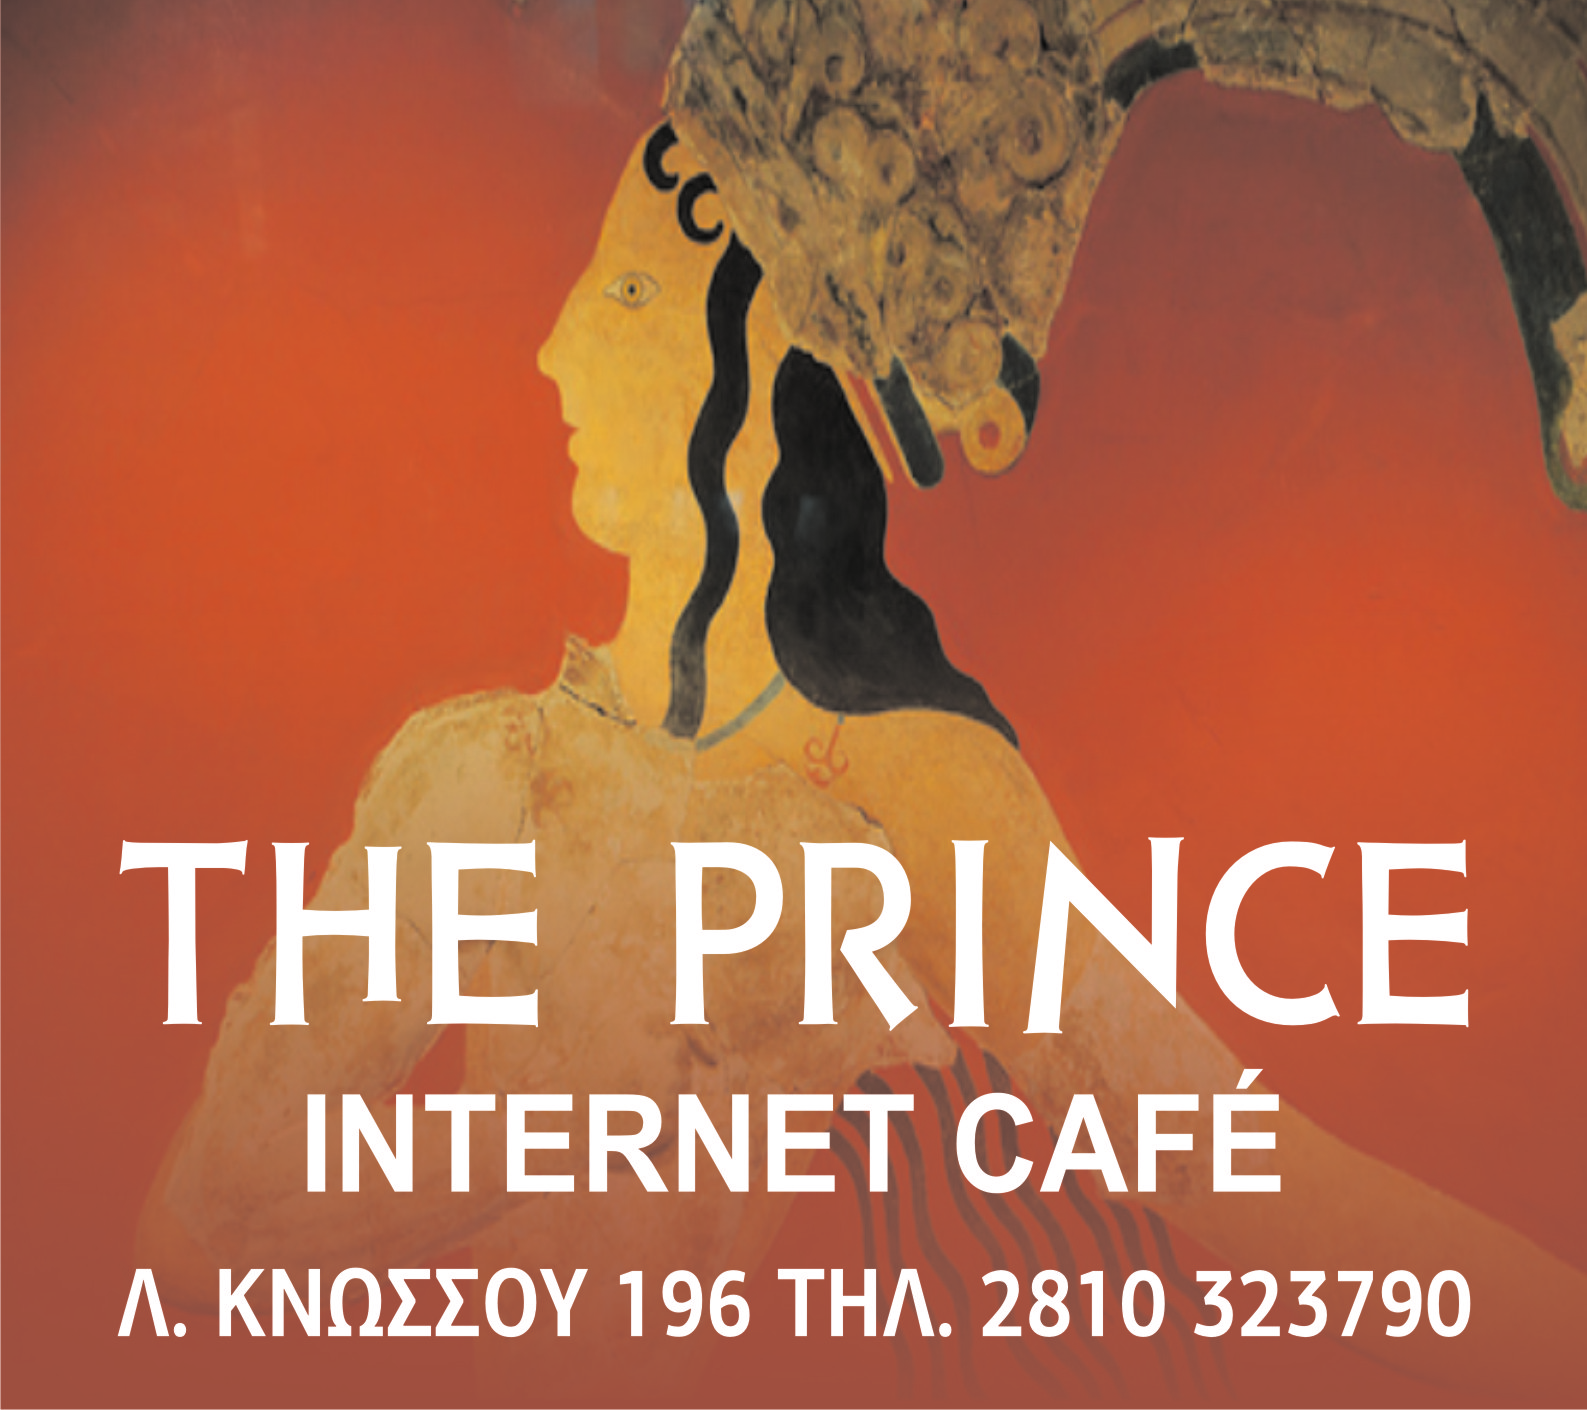 THE PRINCE INTERNET CAFE